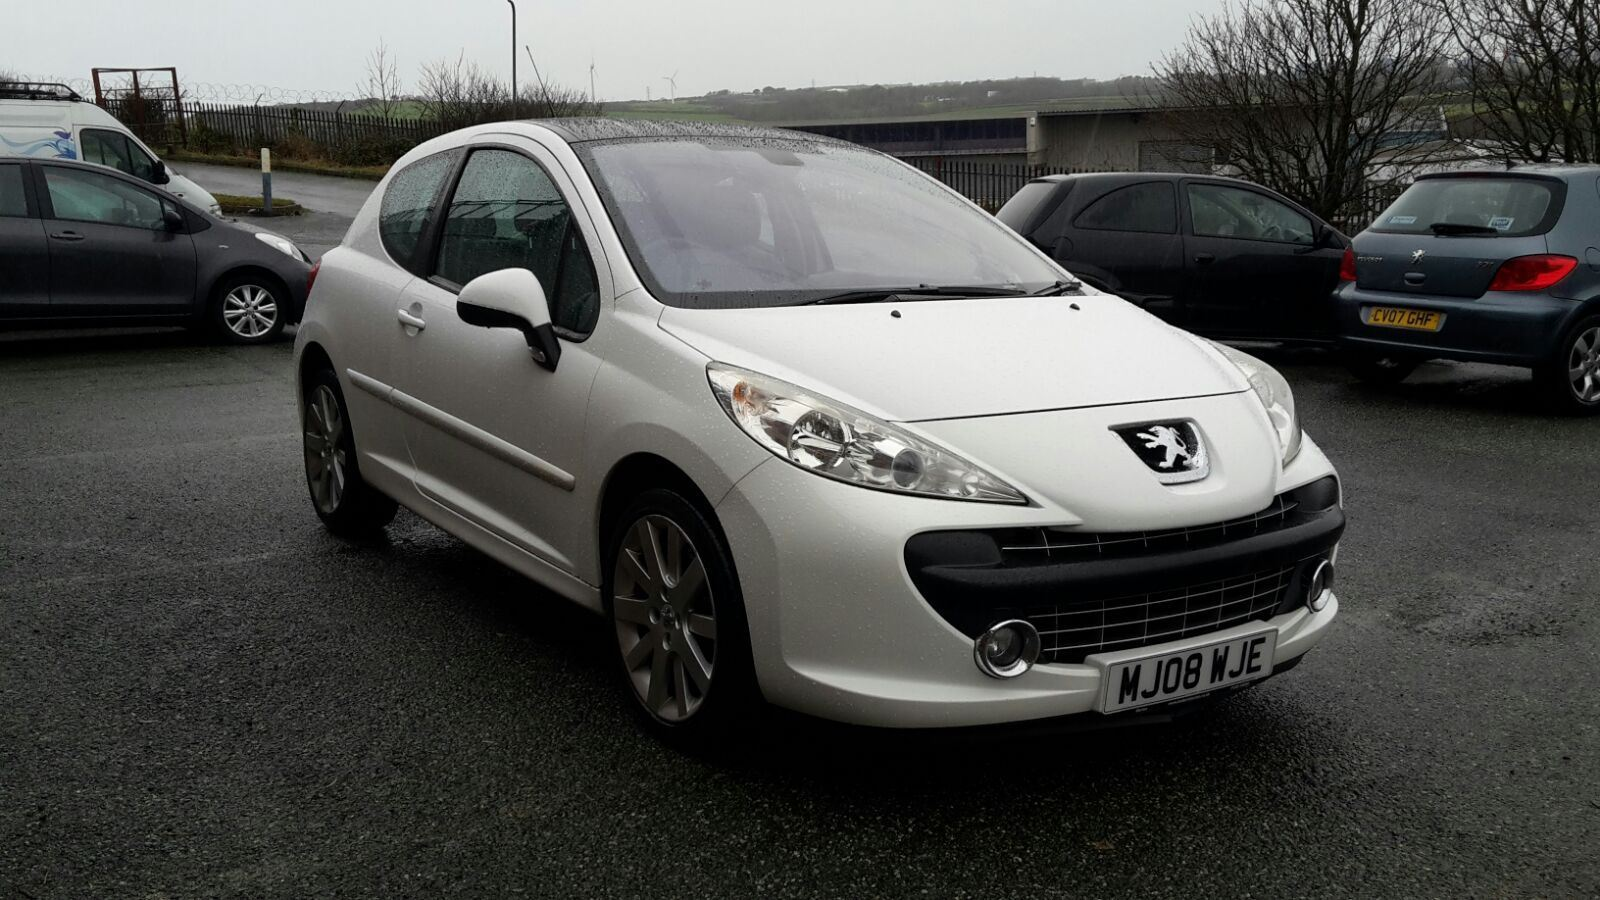 peugeot 207 gt car servicing repairs thornton motors. Black Bedroom Furniture Sets. Home Design Ideas